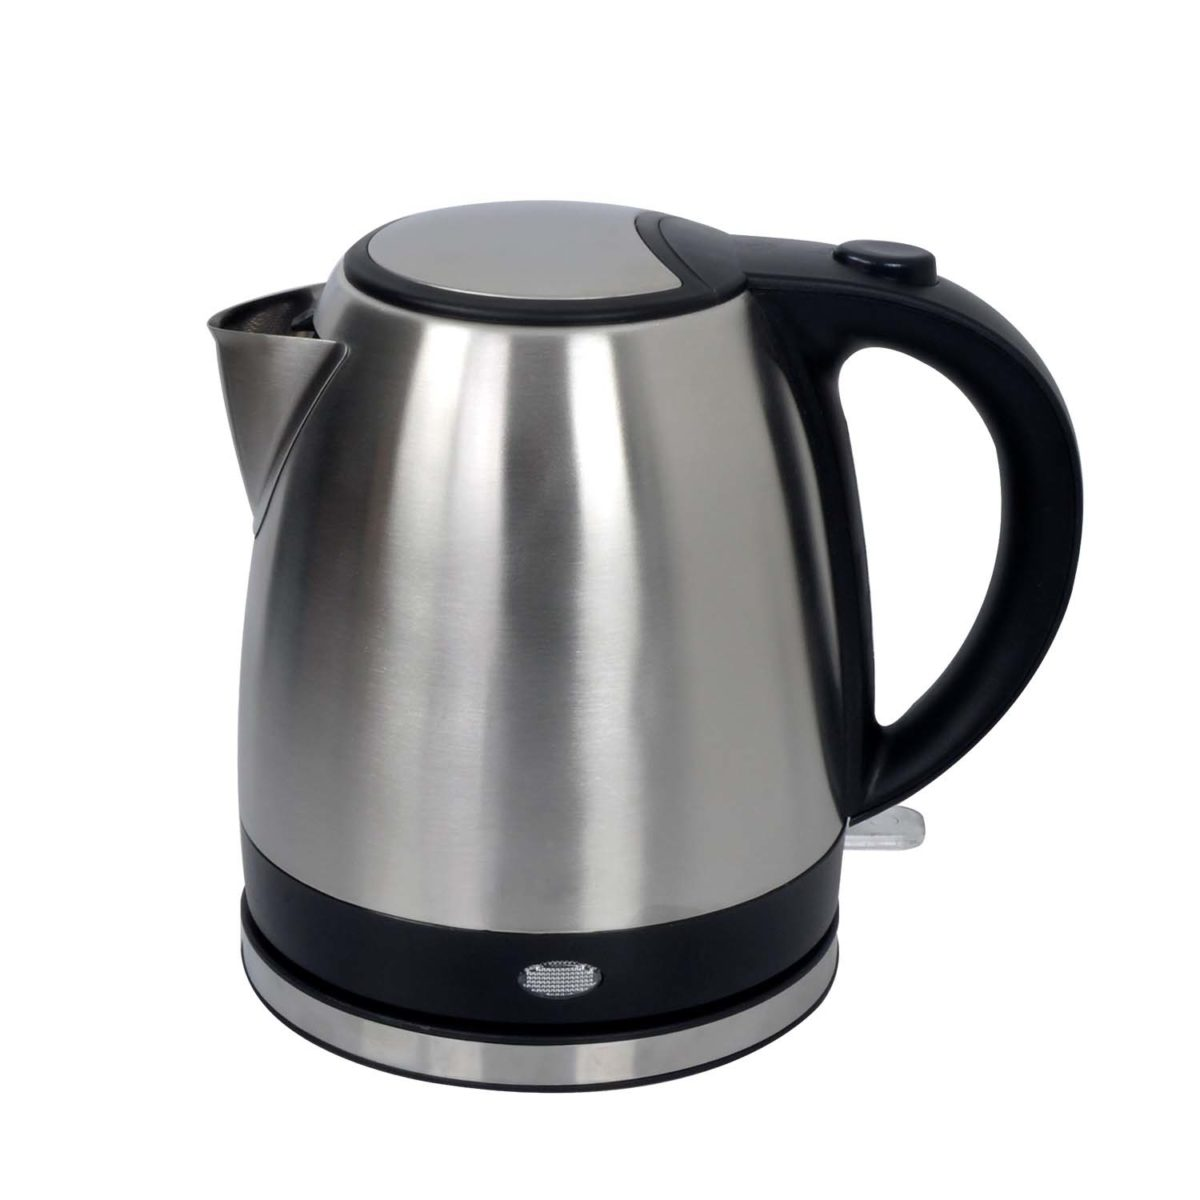 Electric Kettle,1.2Litre,Stainless steel,hospitality sector,hotel supplies ireland,hotels,guesthouses,B&B's